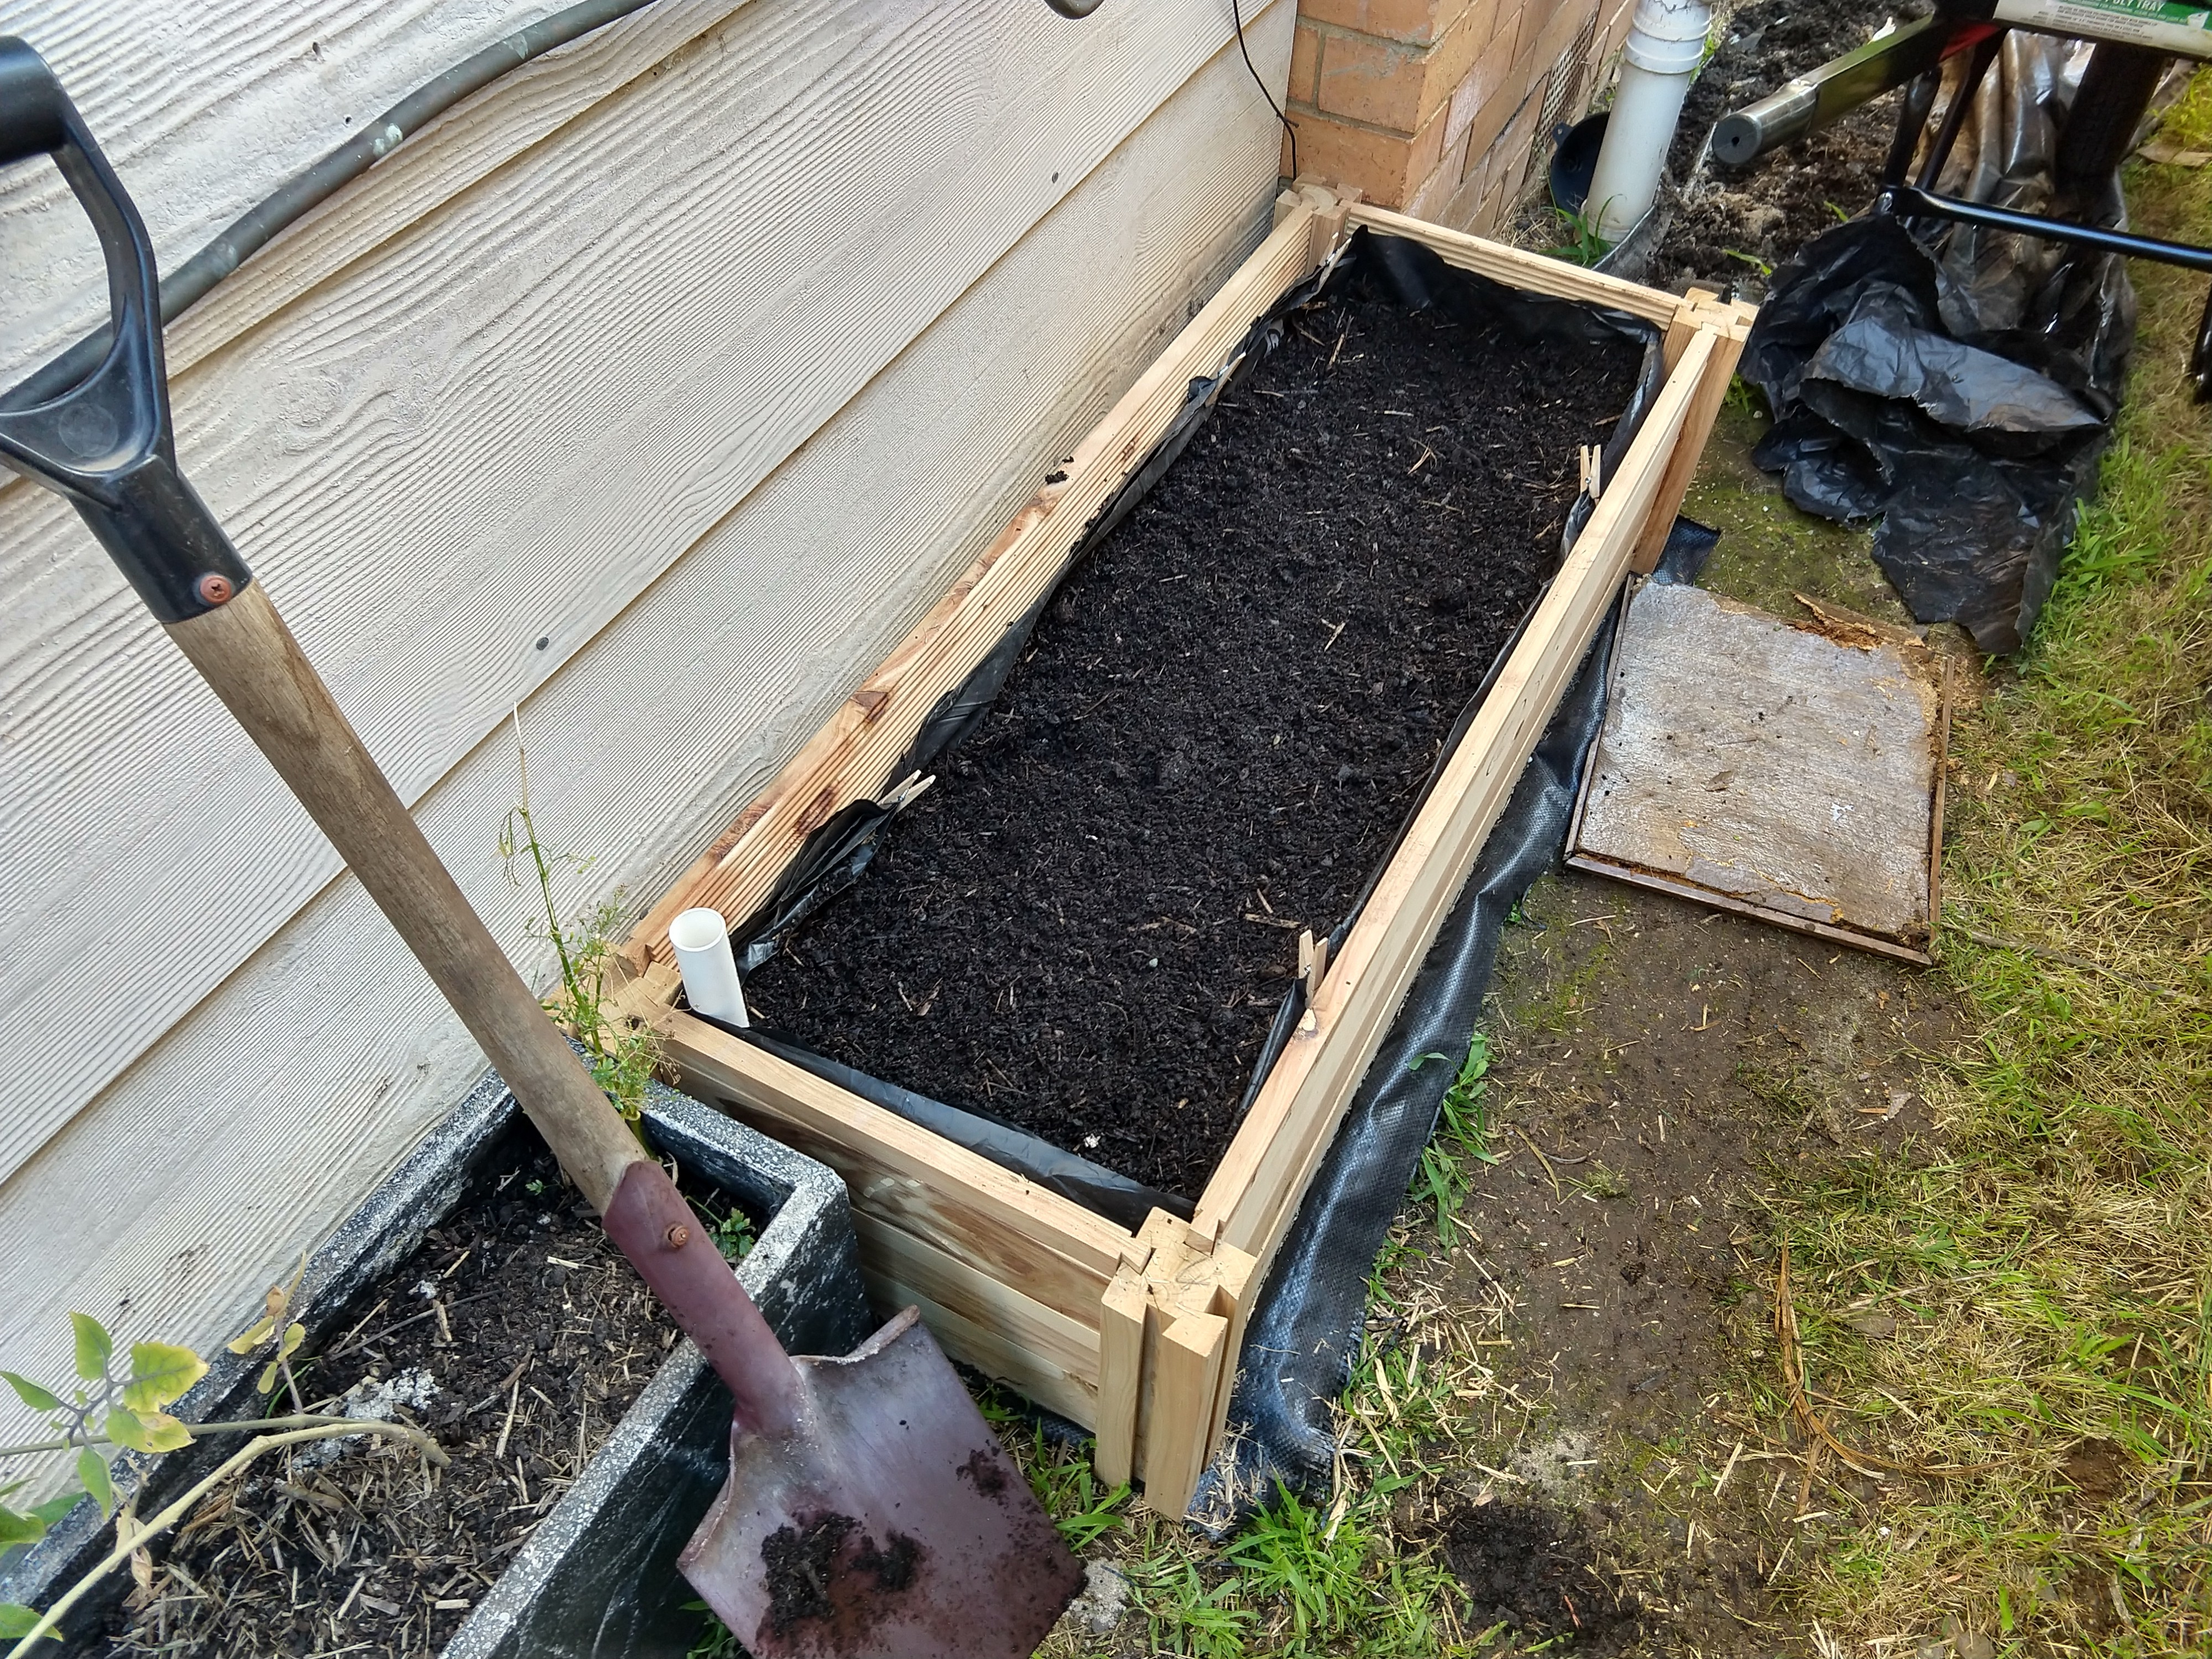 A garden bed against the wall of a house, filled with soil.